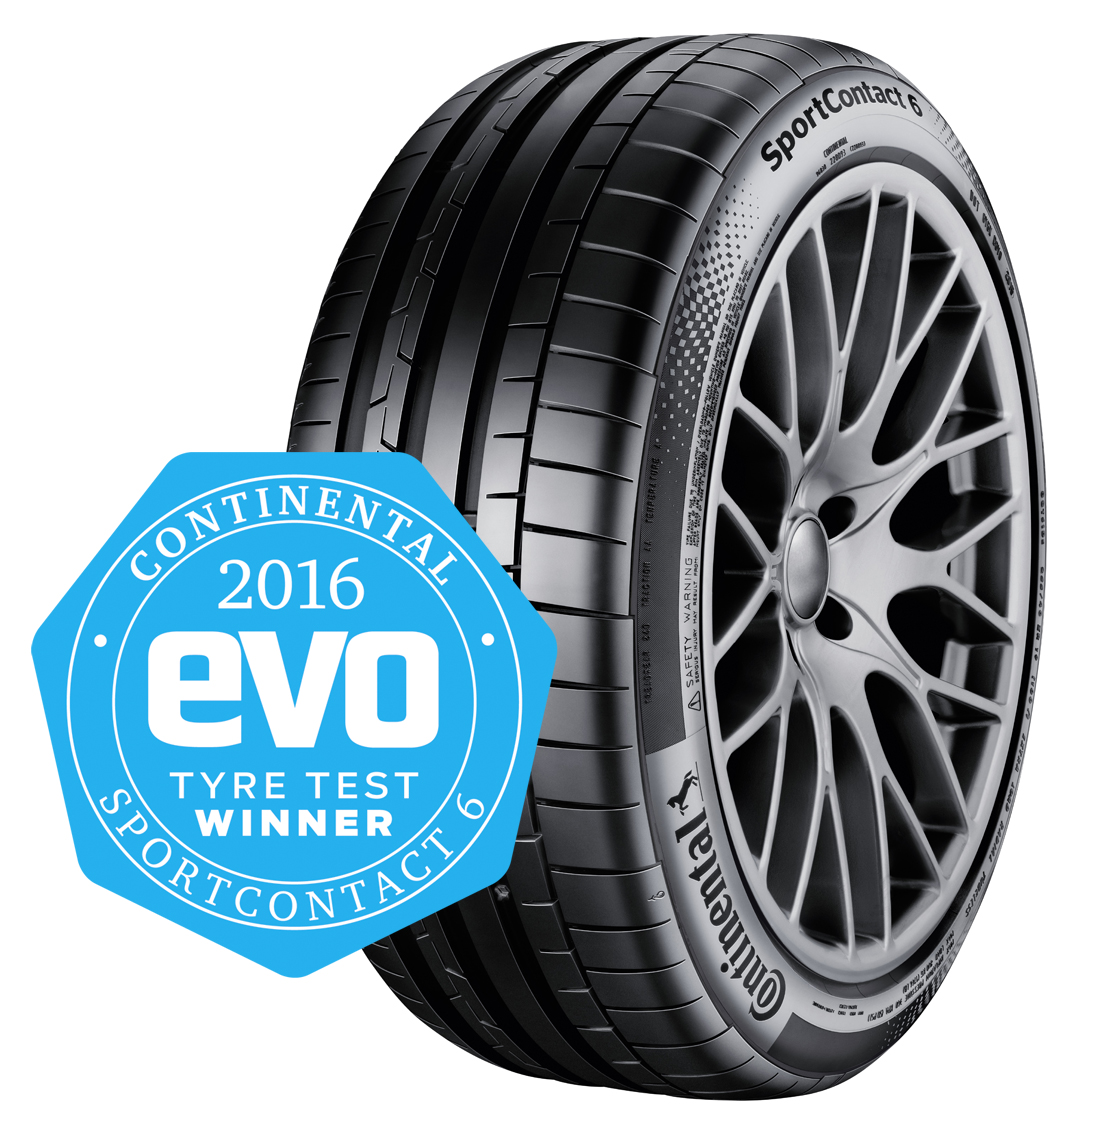 Continental SportContact 6 with Evo Winner Award Badge